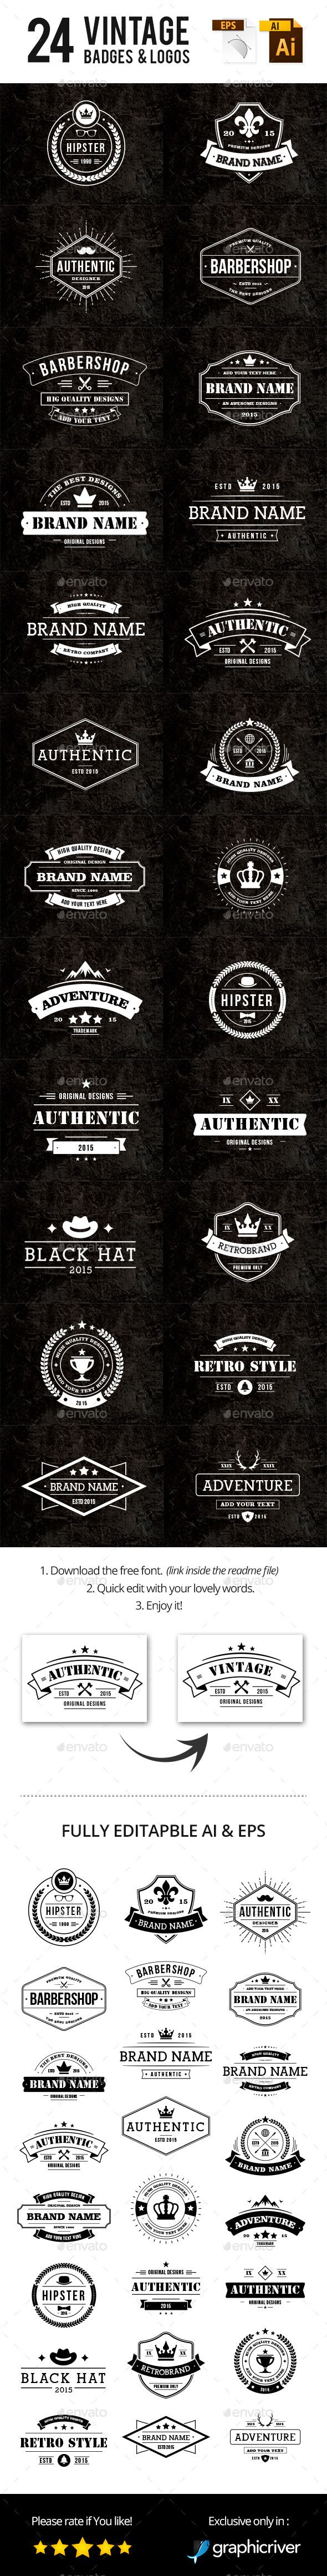 24 Vintage Badges & Logos #design Download: http://graphicriver.net/item/24-vintage-badges-logos/12038951?ref=ksioks